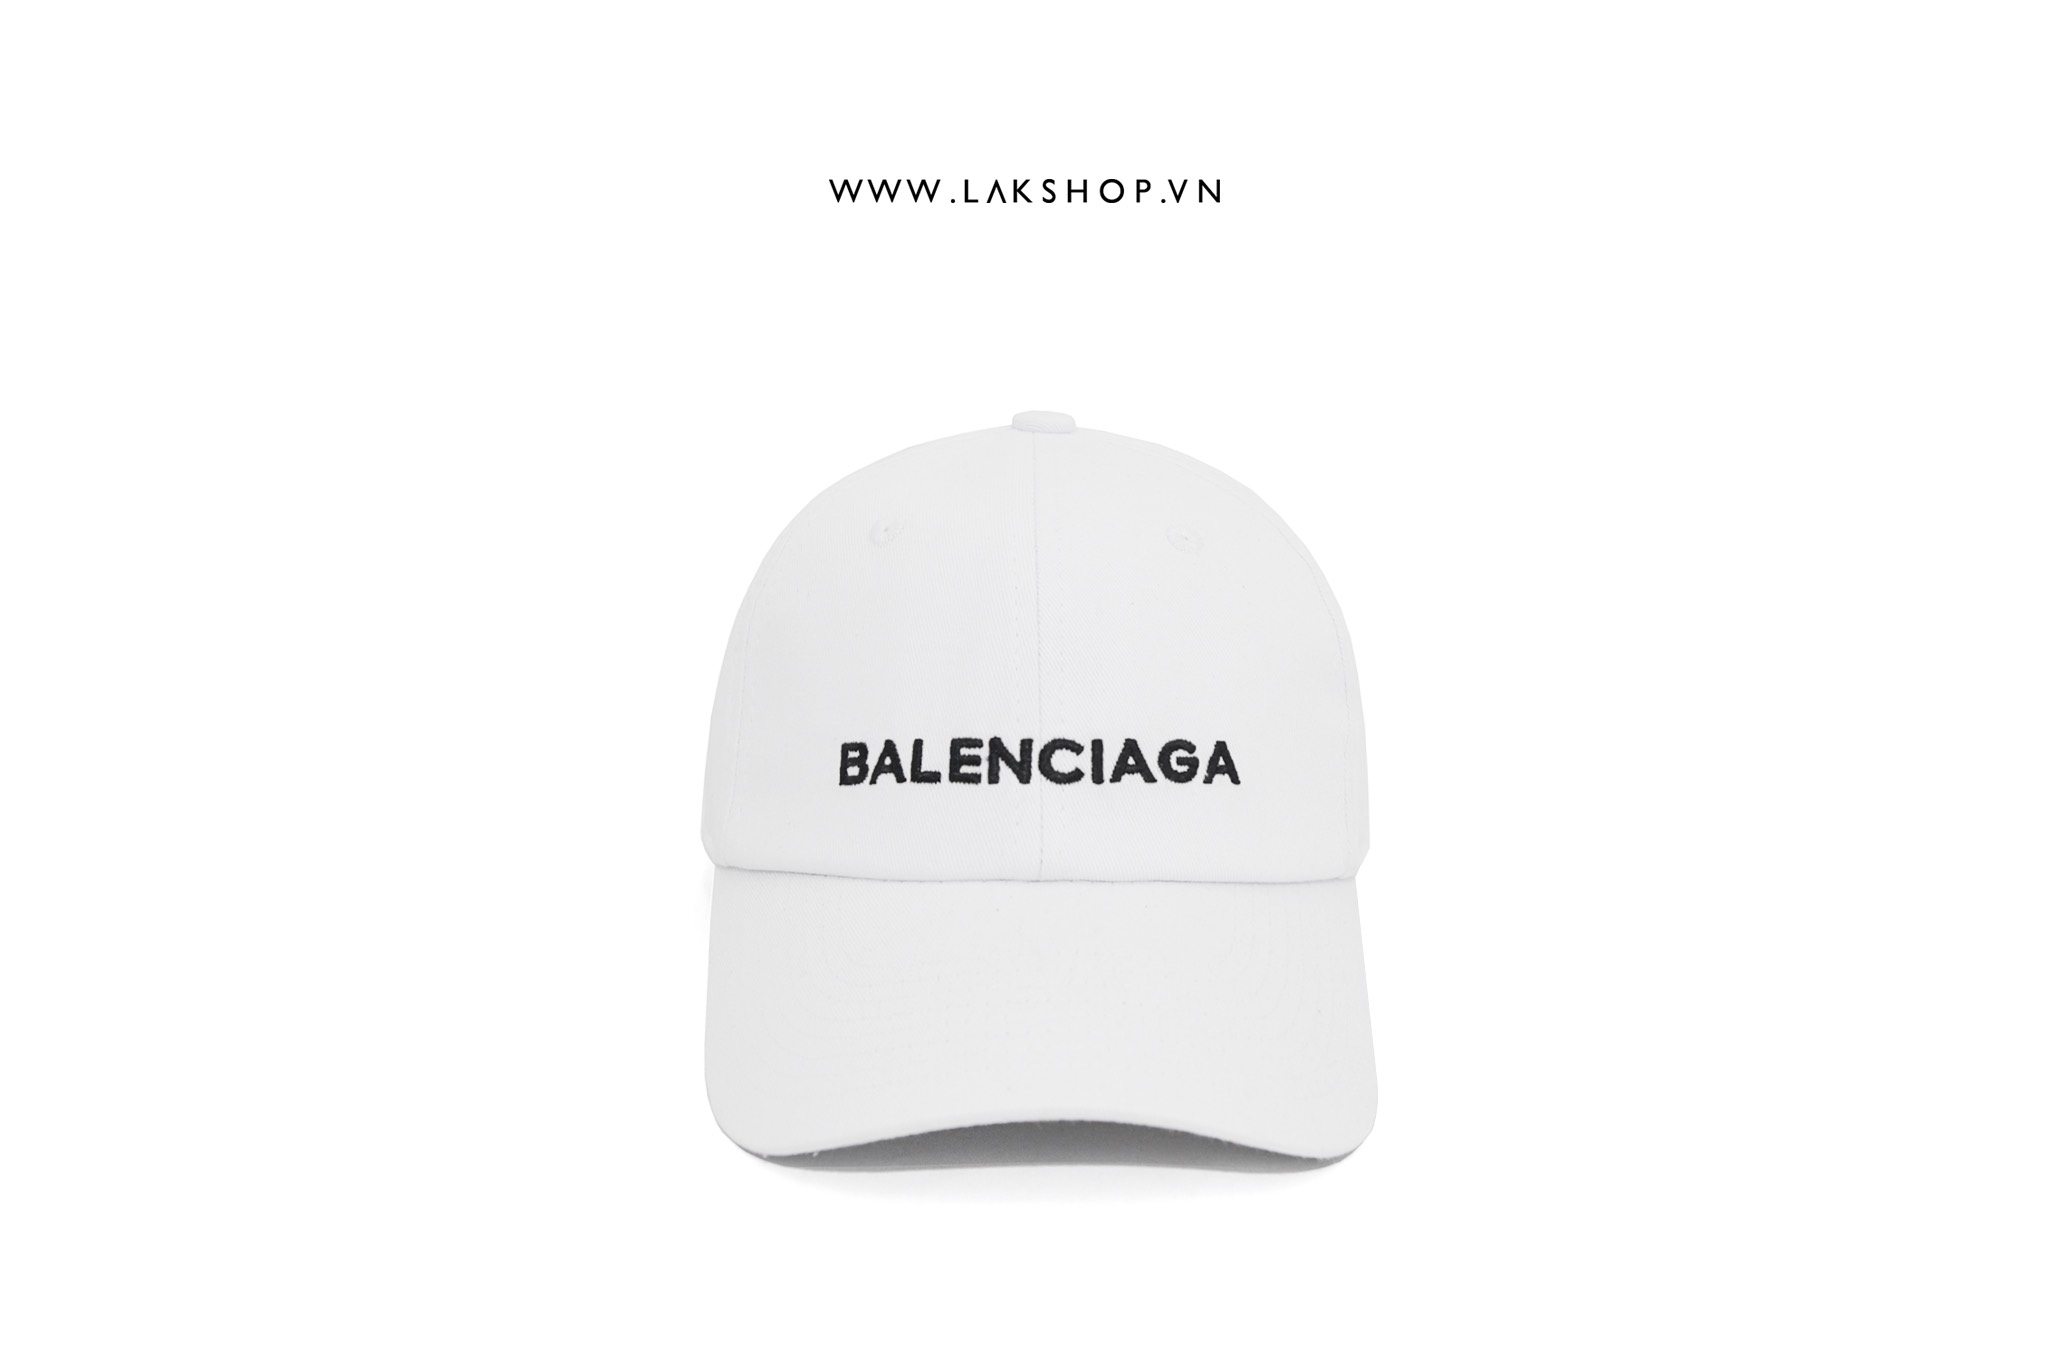 Balenciaga Embroidered Logo White Baseball Cap